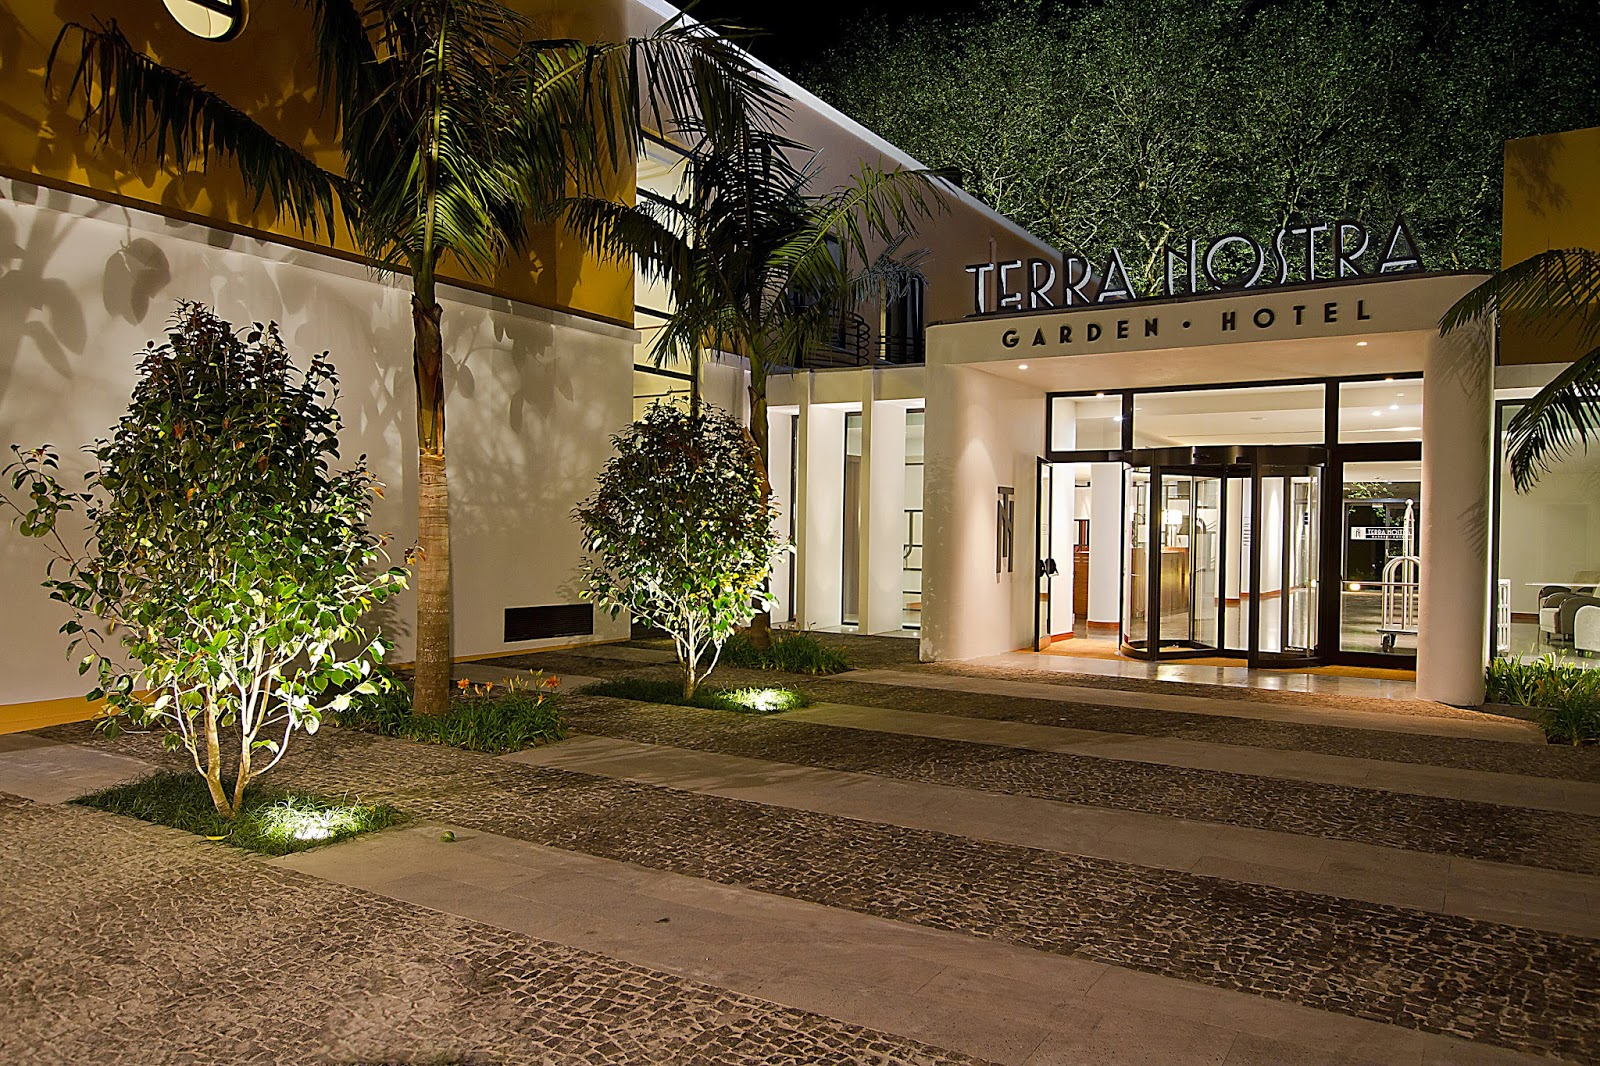 Terra nostra garden hotel vence pr mio de portugal s for Leading small hotels